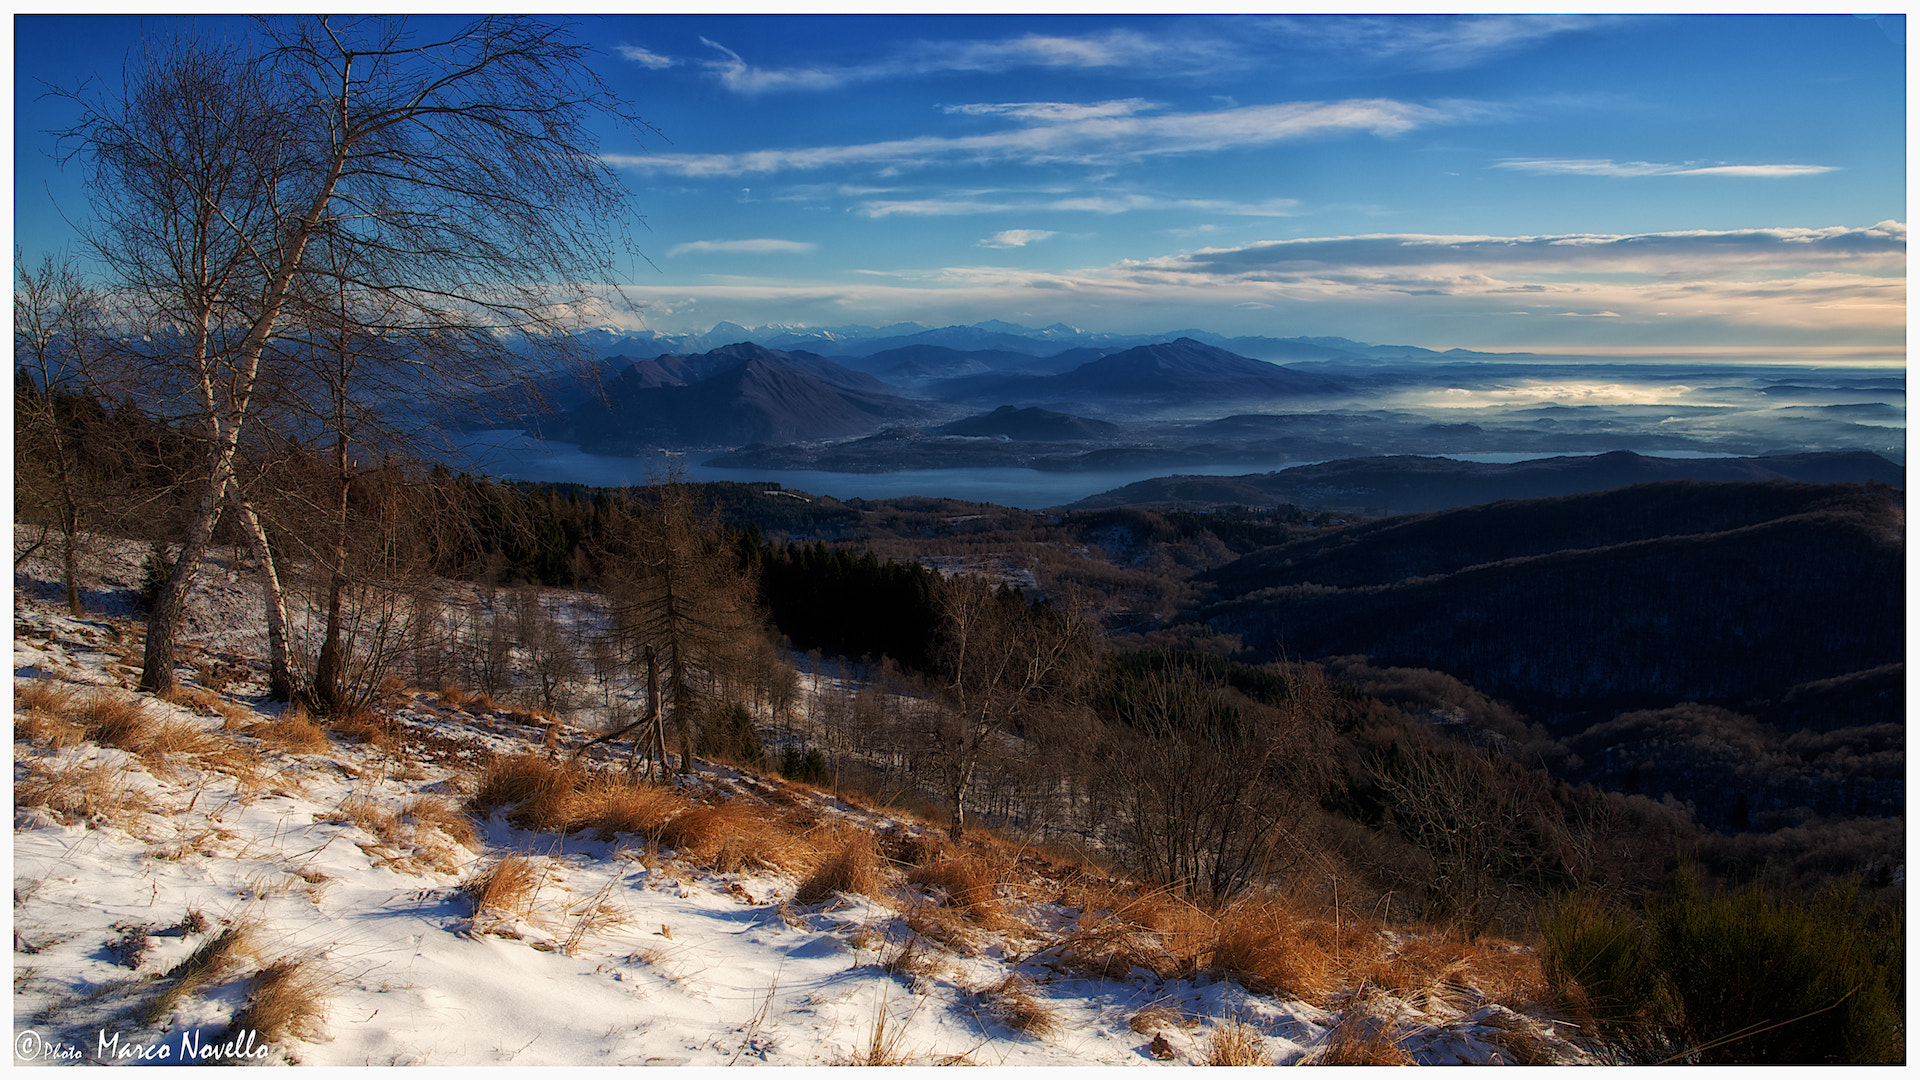 Photograph From Mottarone by Marco Novello on 500px